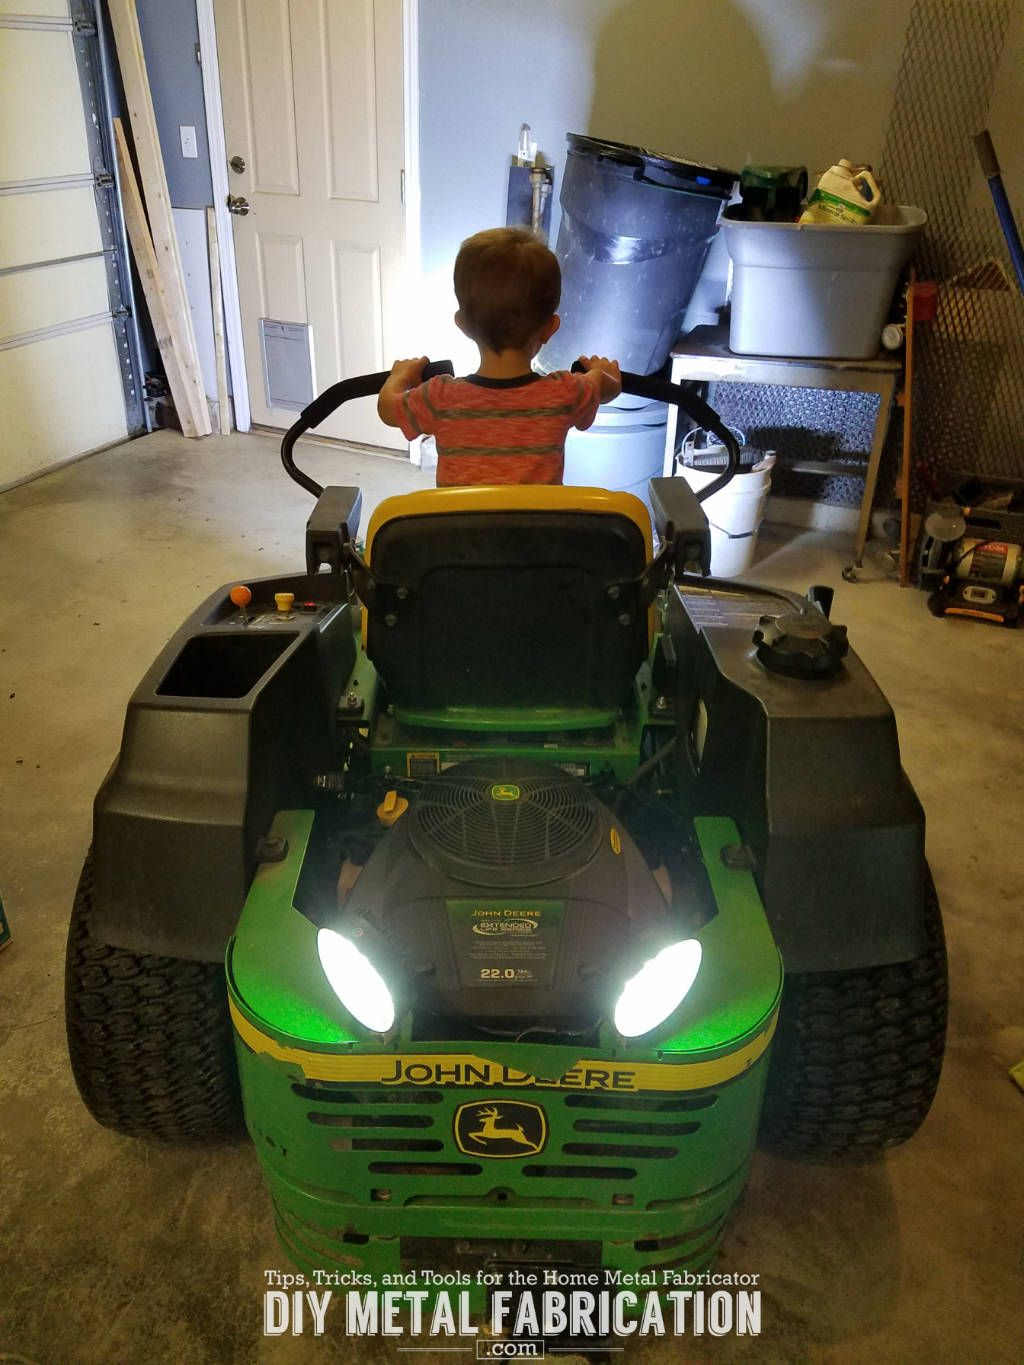 Lawn Tractor Led Light Conversion | Lamps and Lighting by